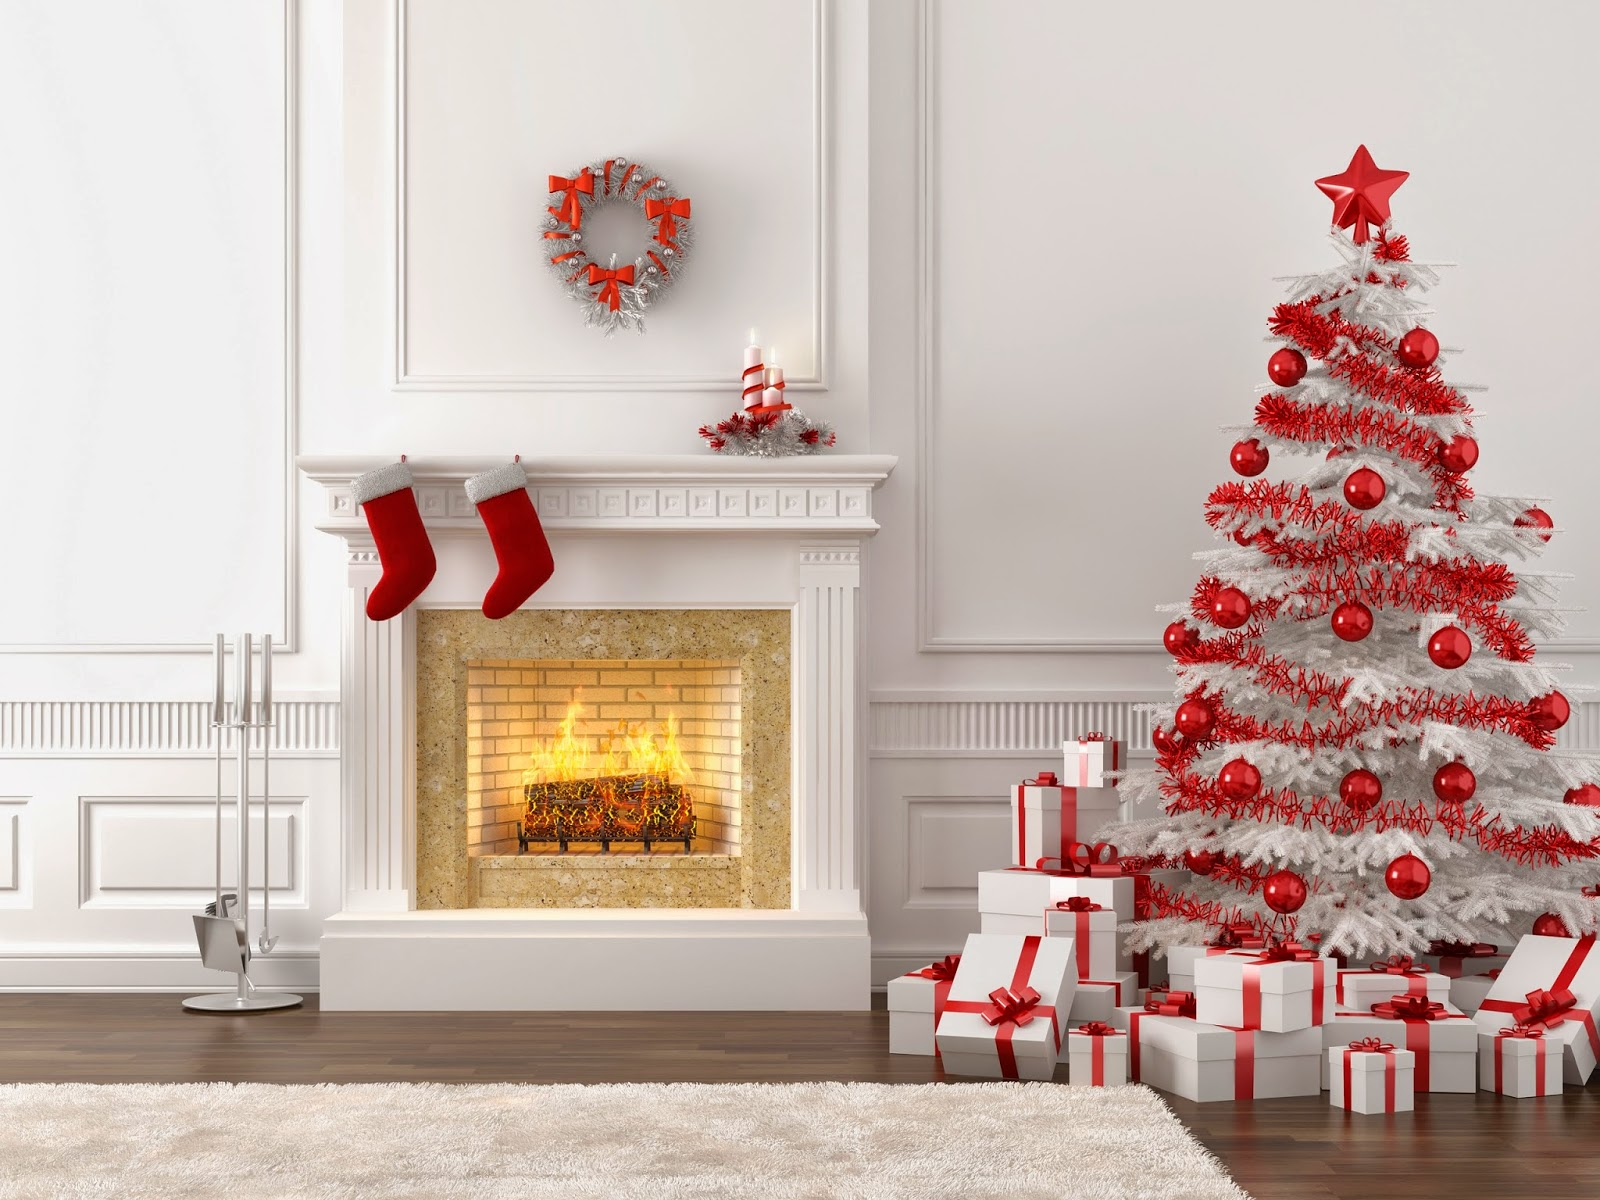 Christmas-decoration-ideas-red-and-white-colour-theme-simple-design-wallpaper.jpg